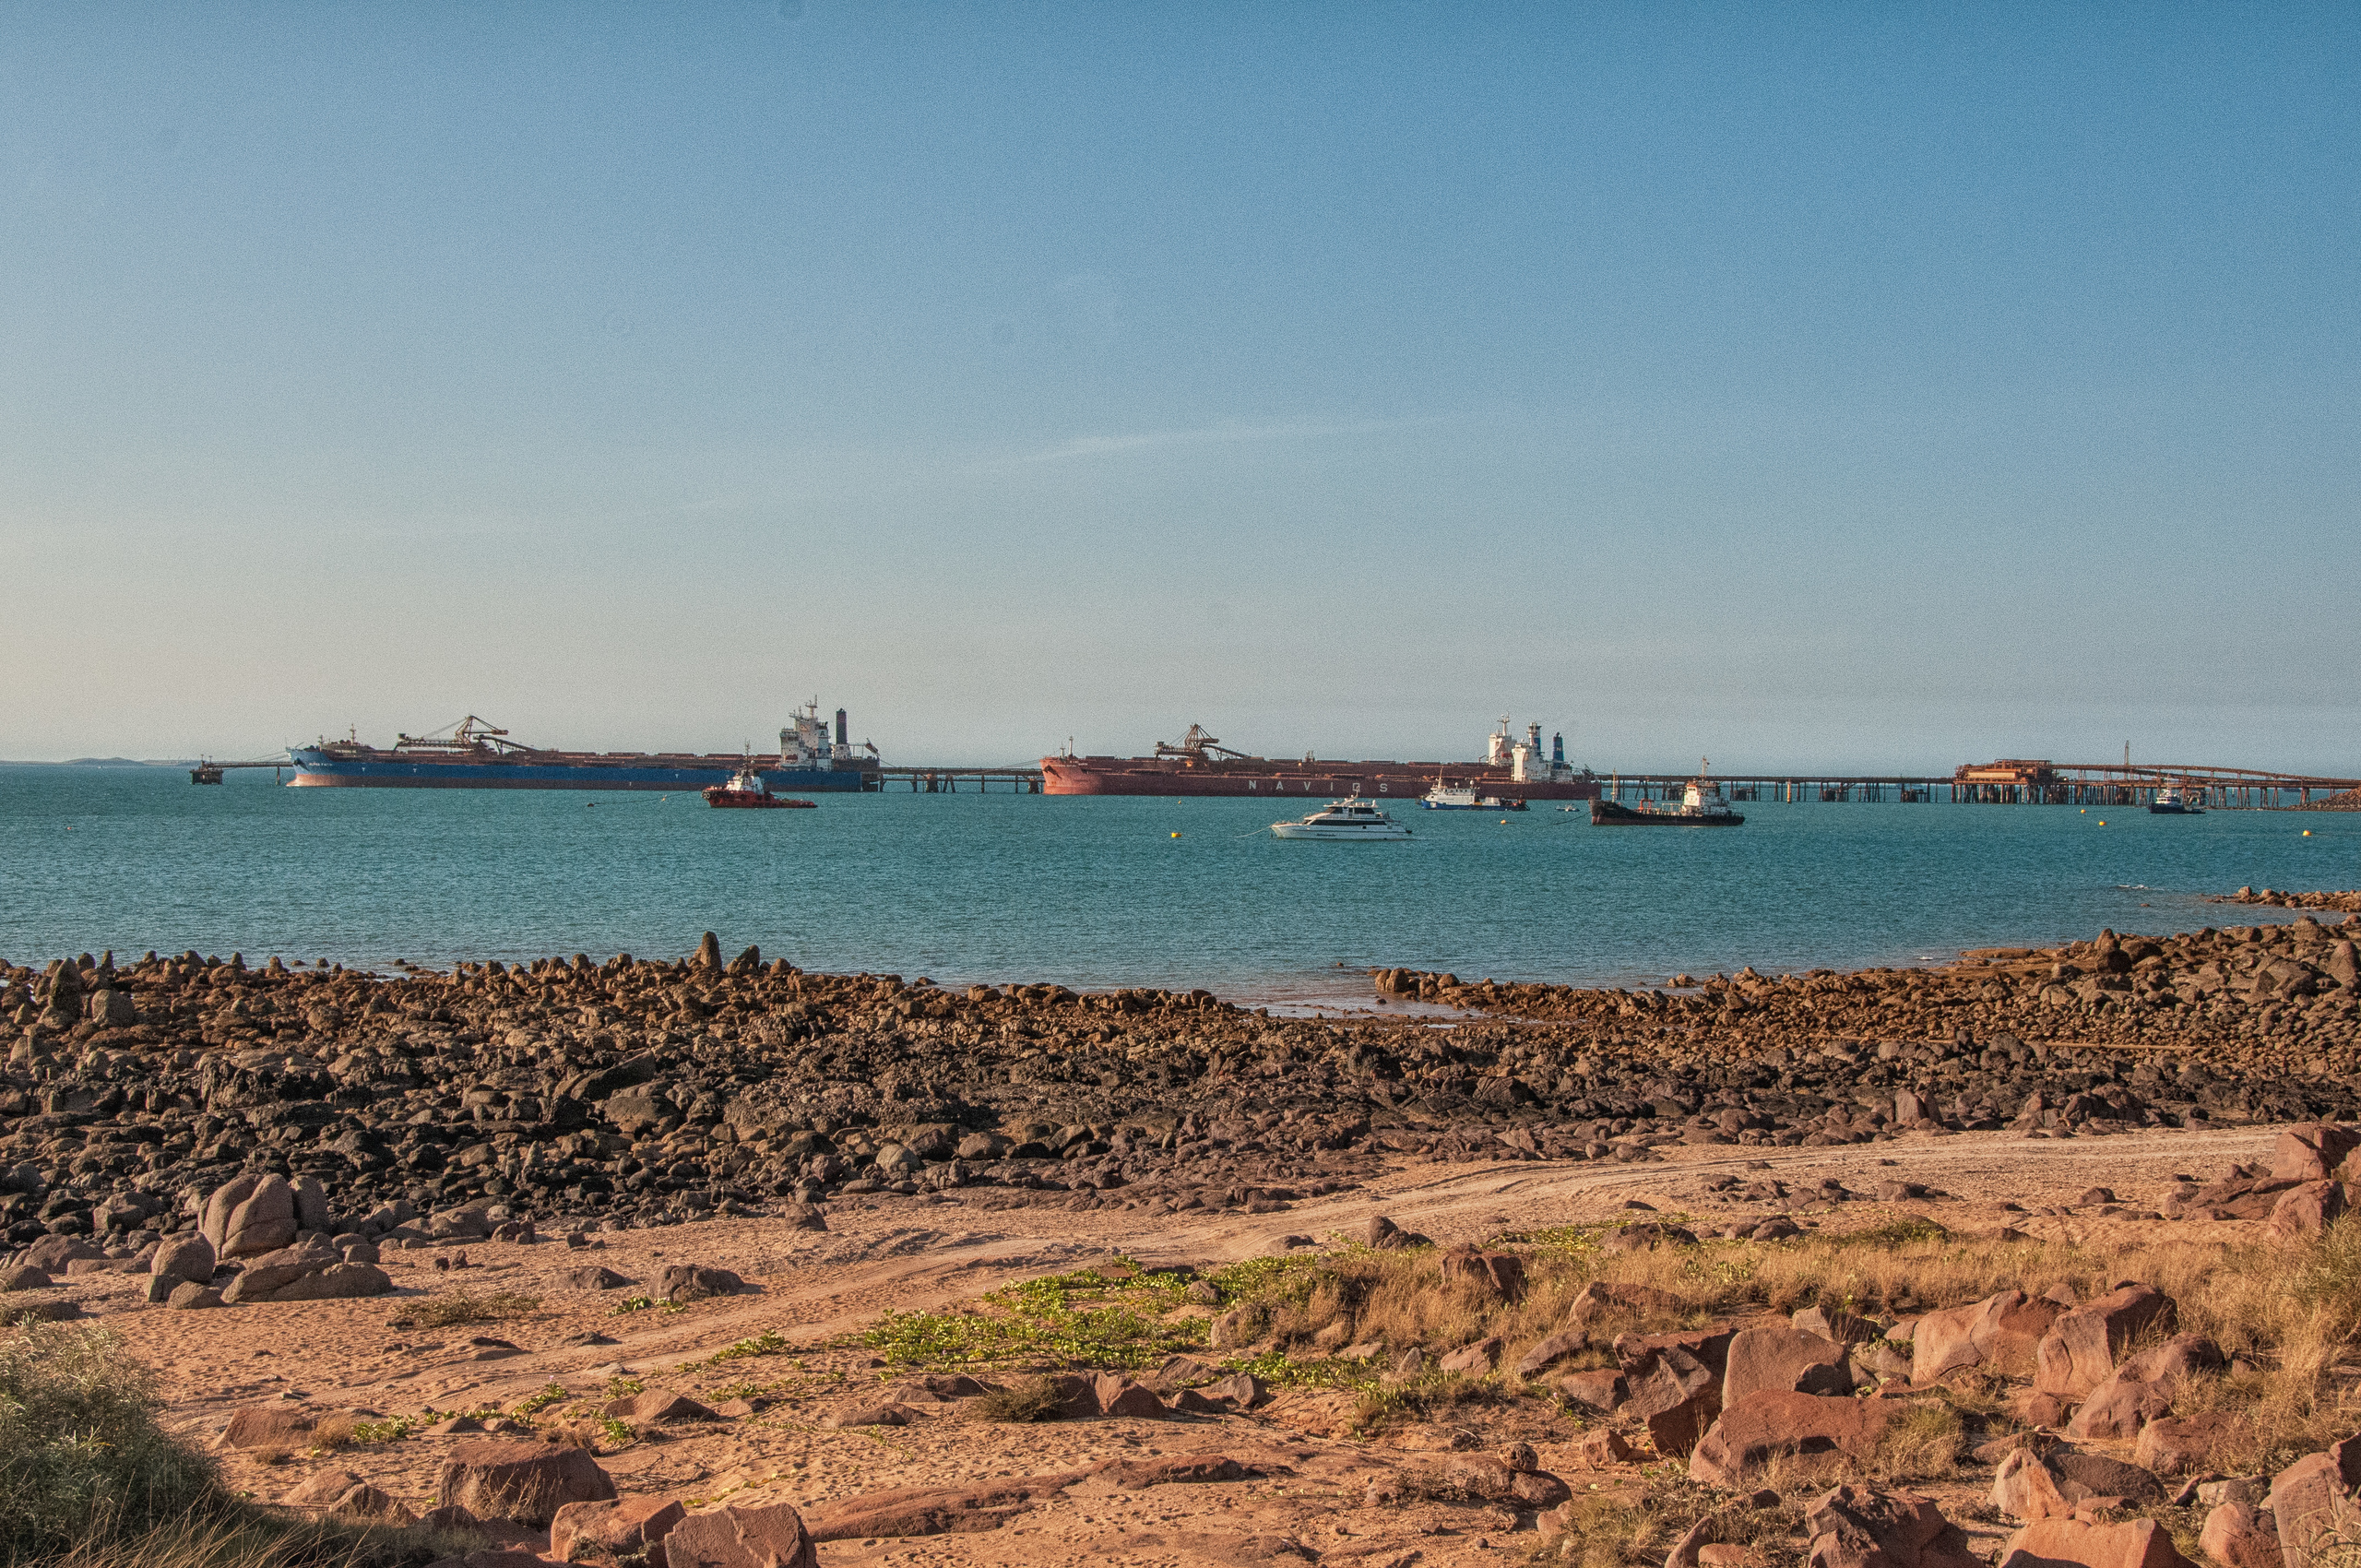 Iron ore loading at Dampier